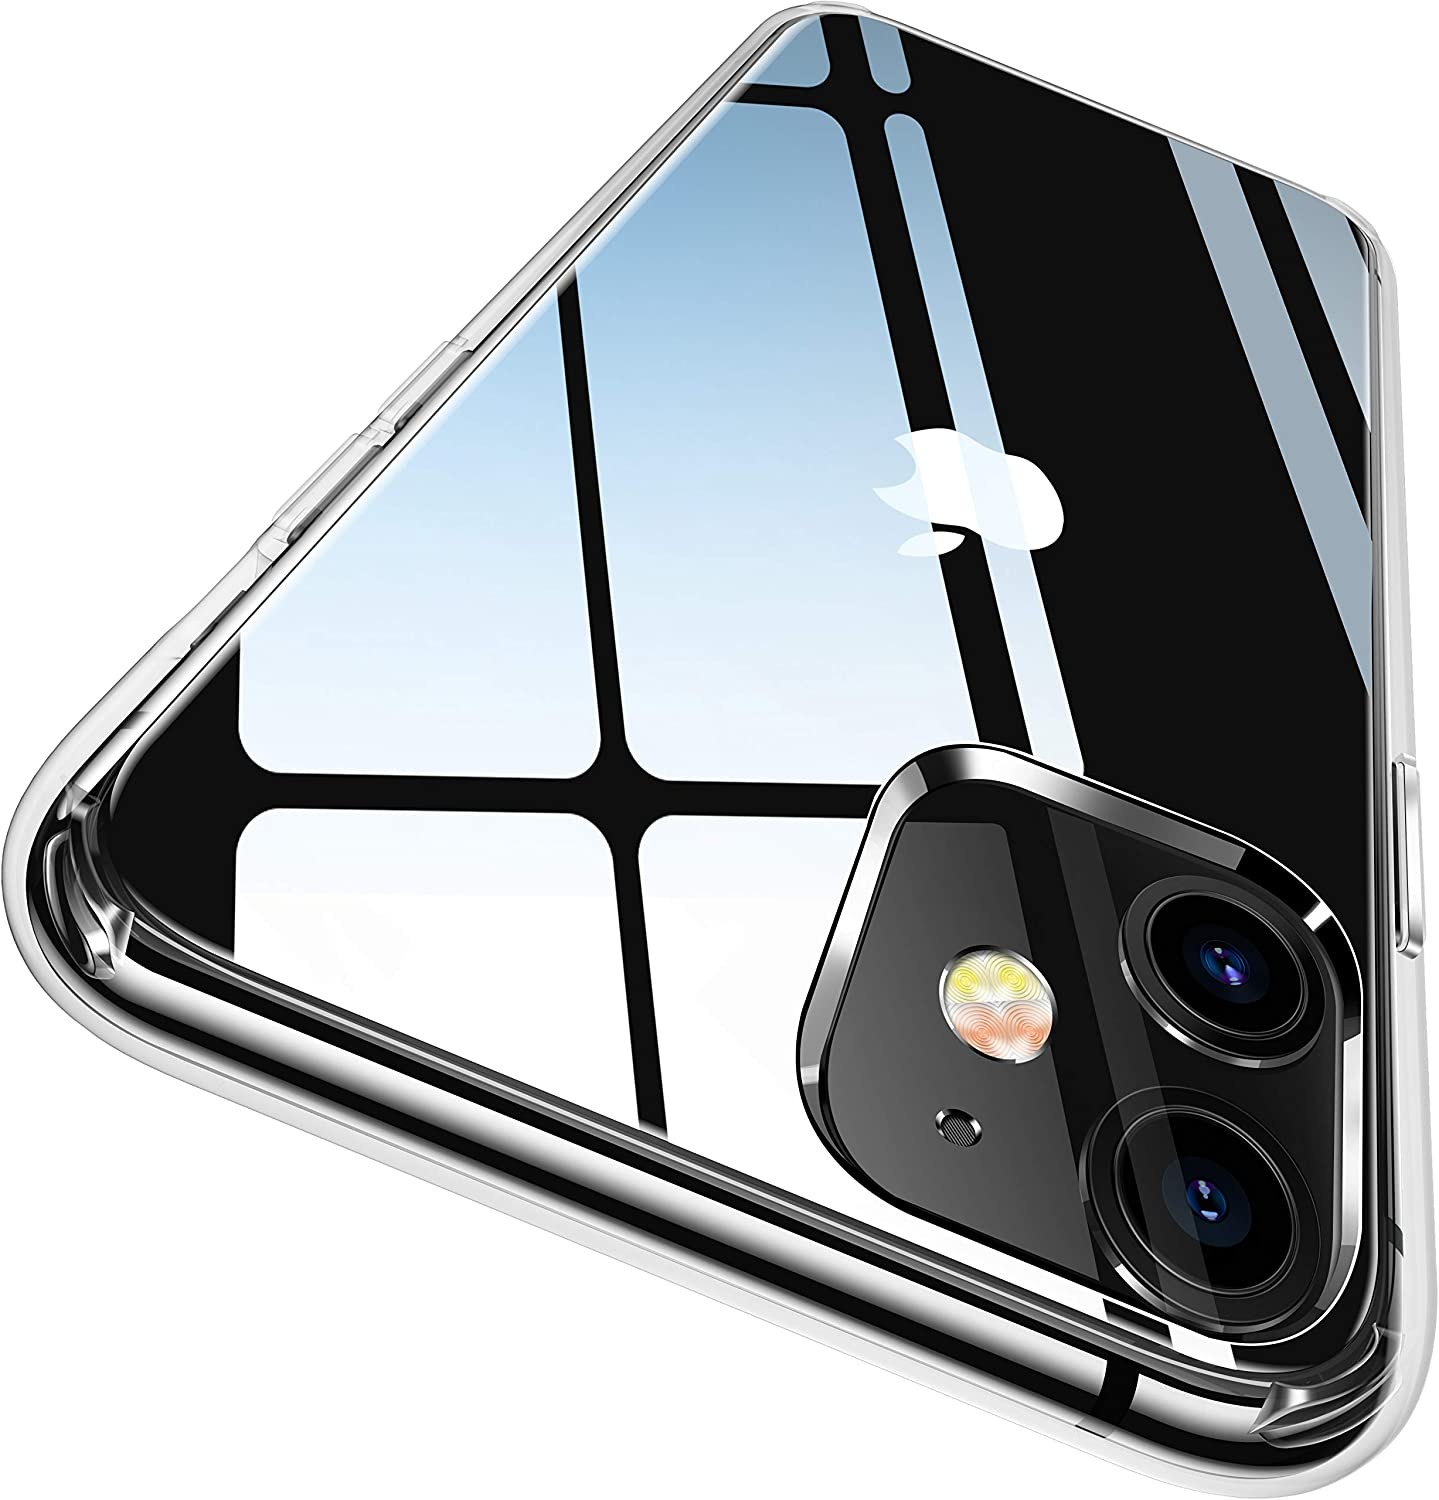 CASEKOO Crystal Clear Compatible with iPhone 11 Case, [Anti-Yellowing] Shockproof Protective Super Hybrid Phone Cases Slim Fit Lightweight Cover for iPhone 11 (6.1 inch) 2019 - Crystal Clear